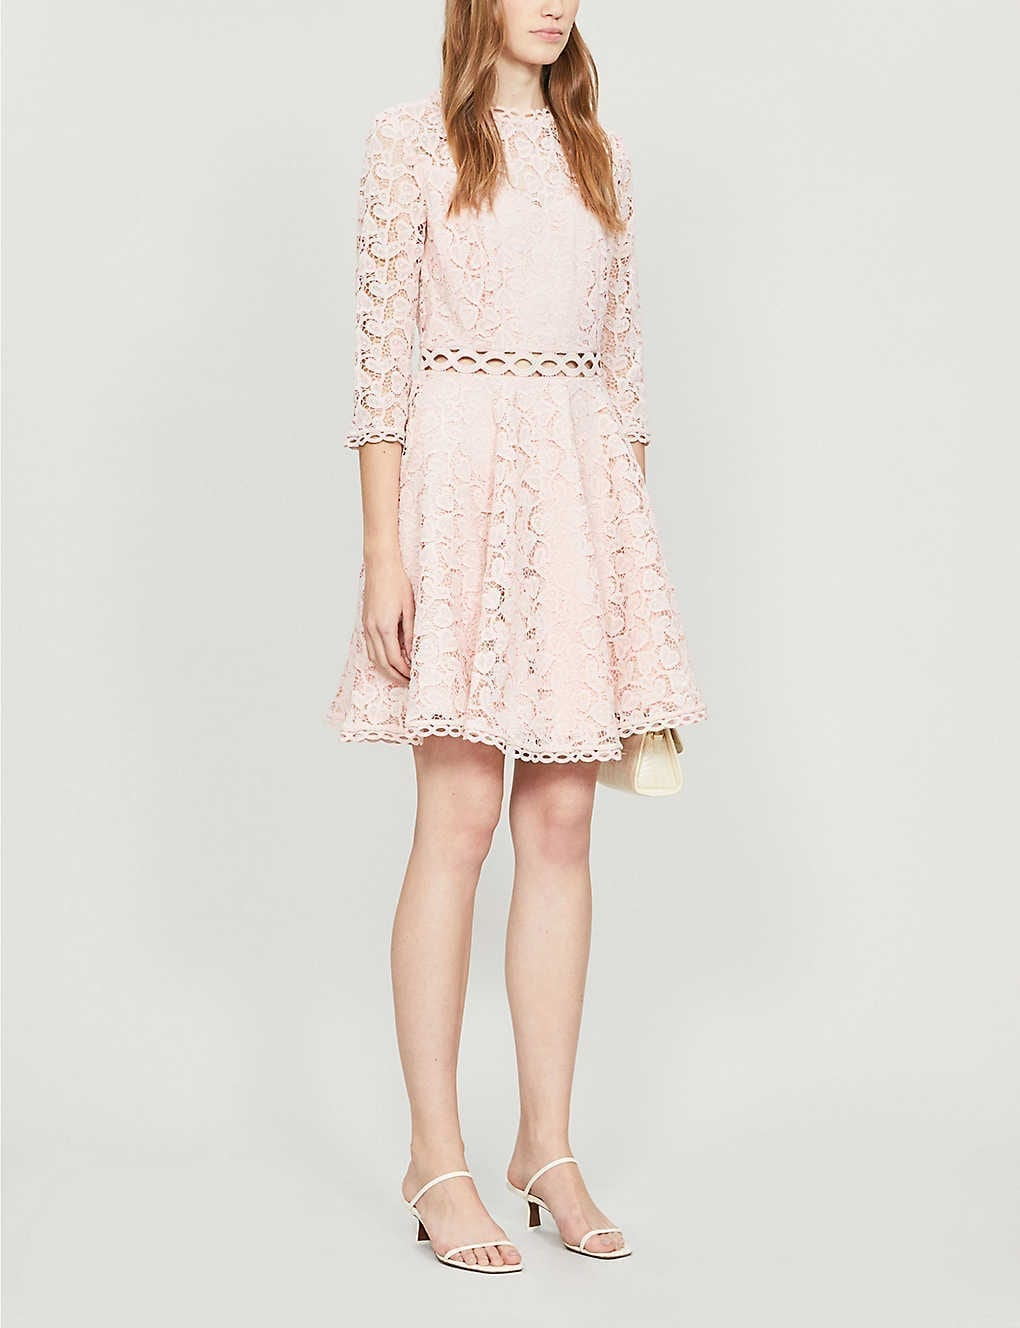 CLAUDIE PIERLOT Rosiere Lace Midi Dress